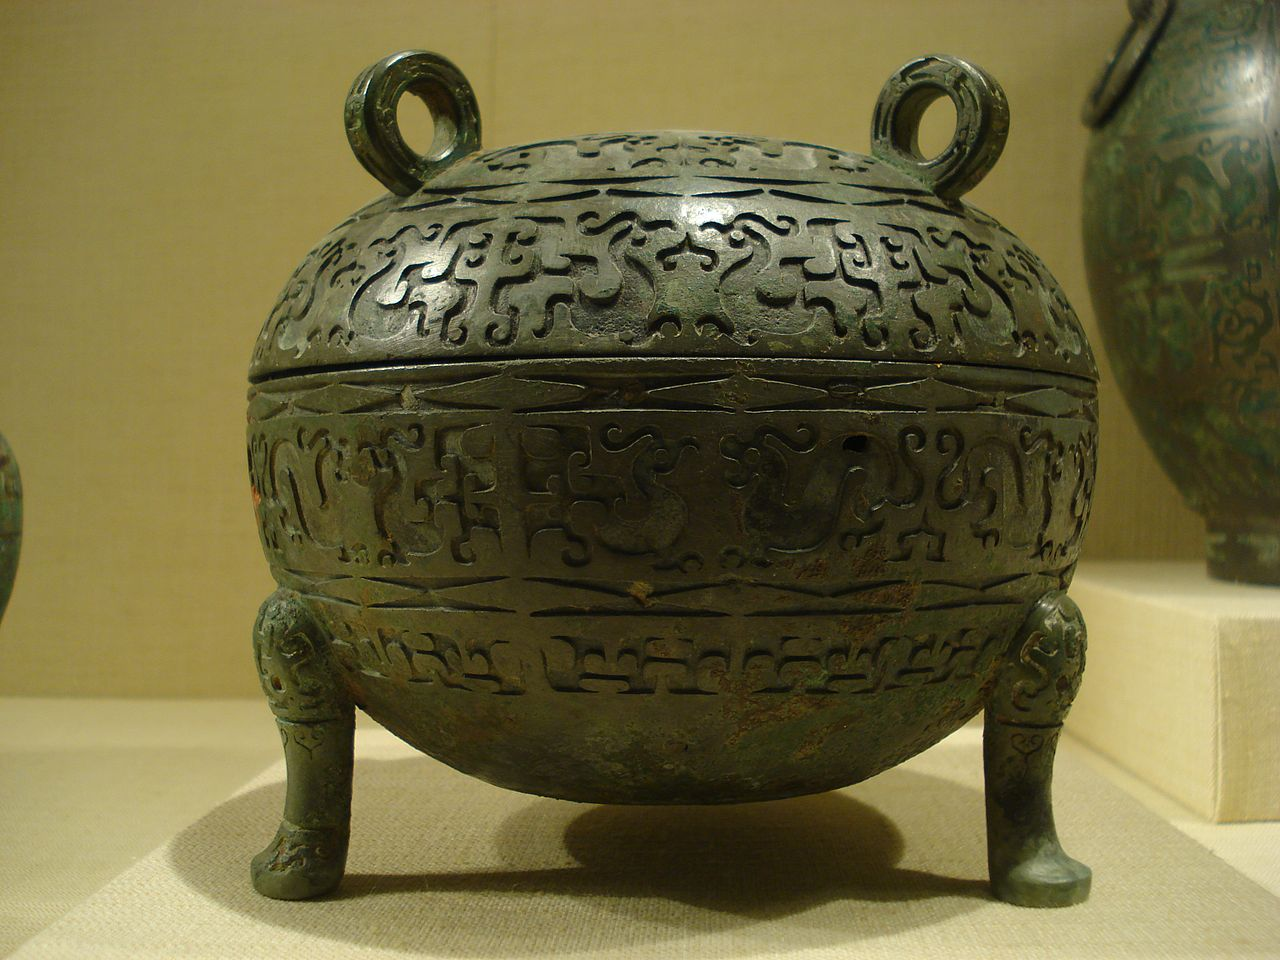 1280px-Ritual_grain_vessel_-_the_Met.jpg